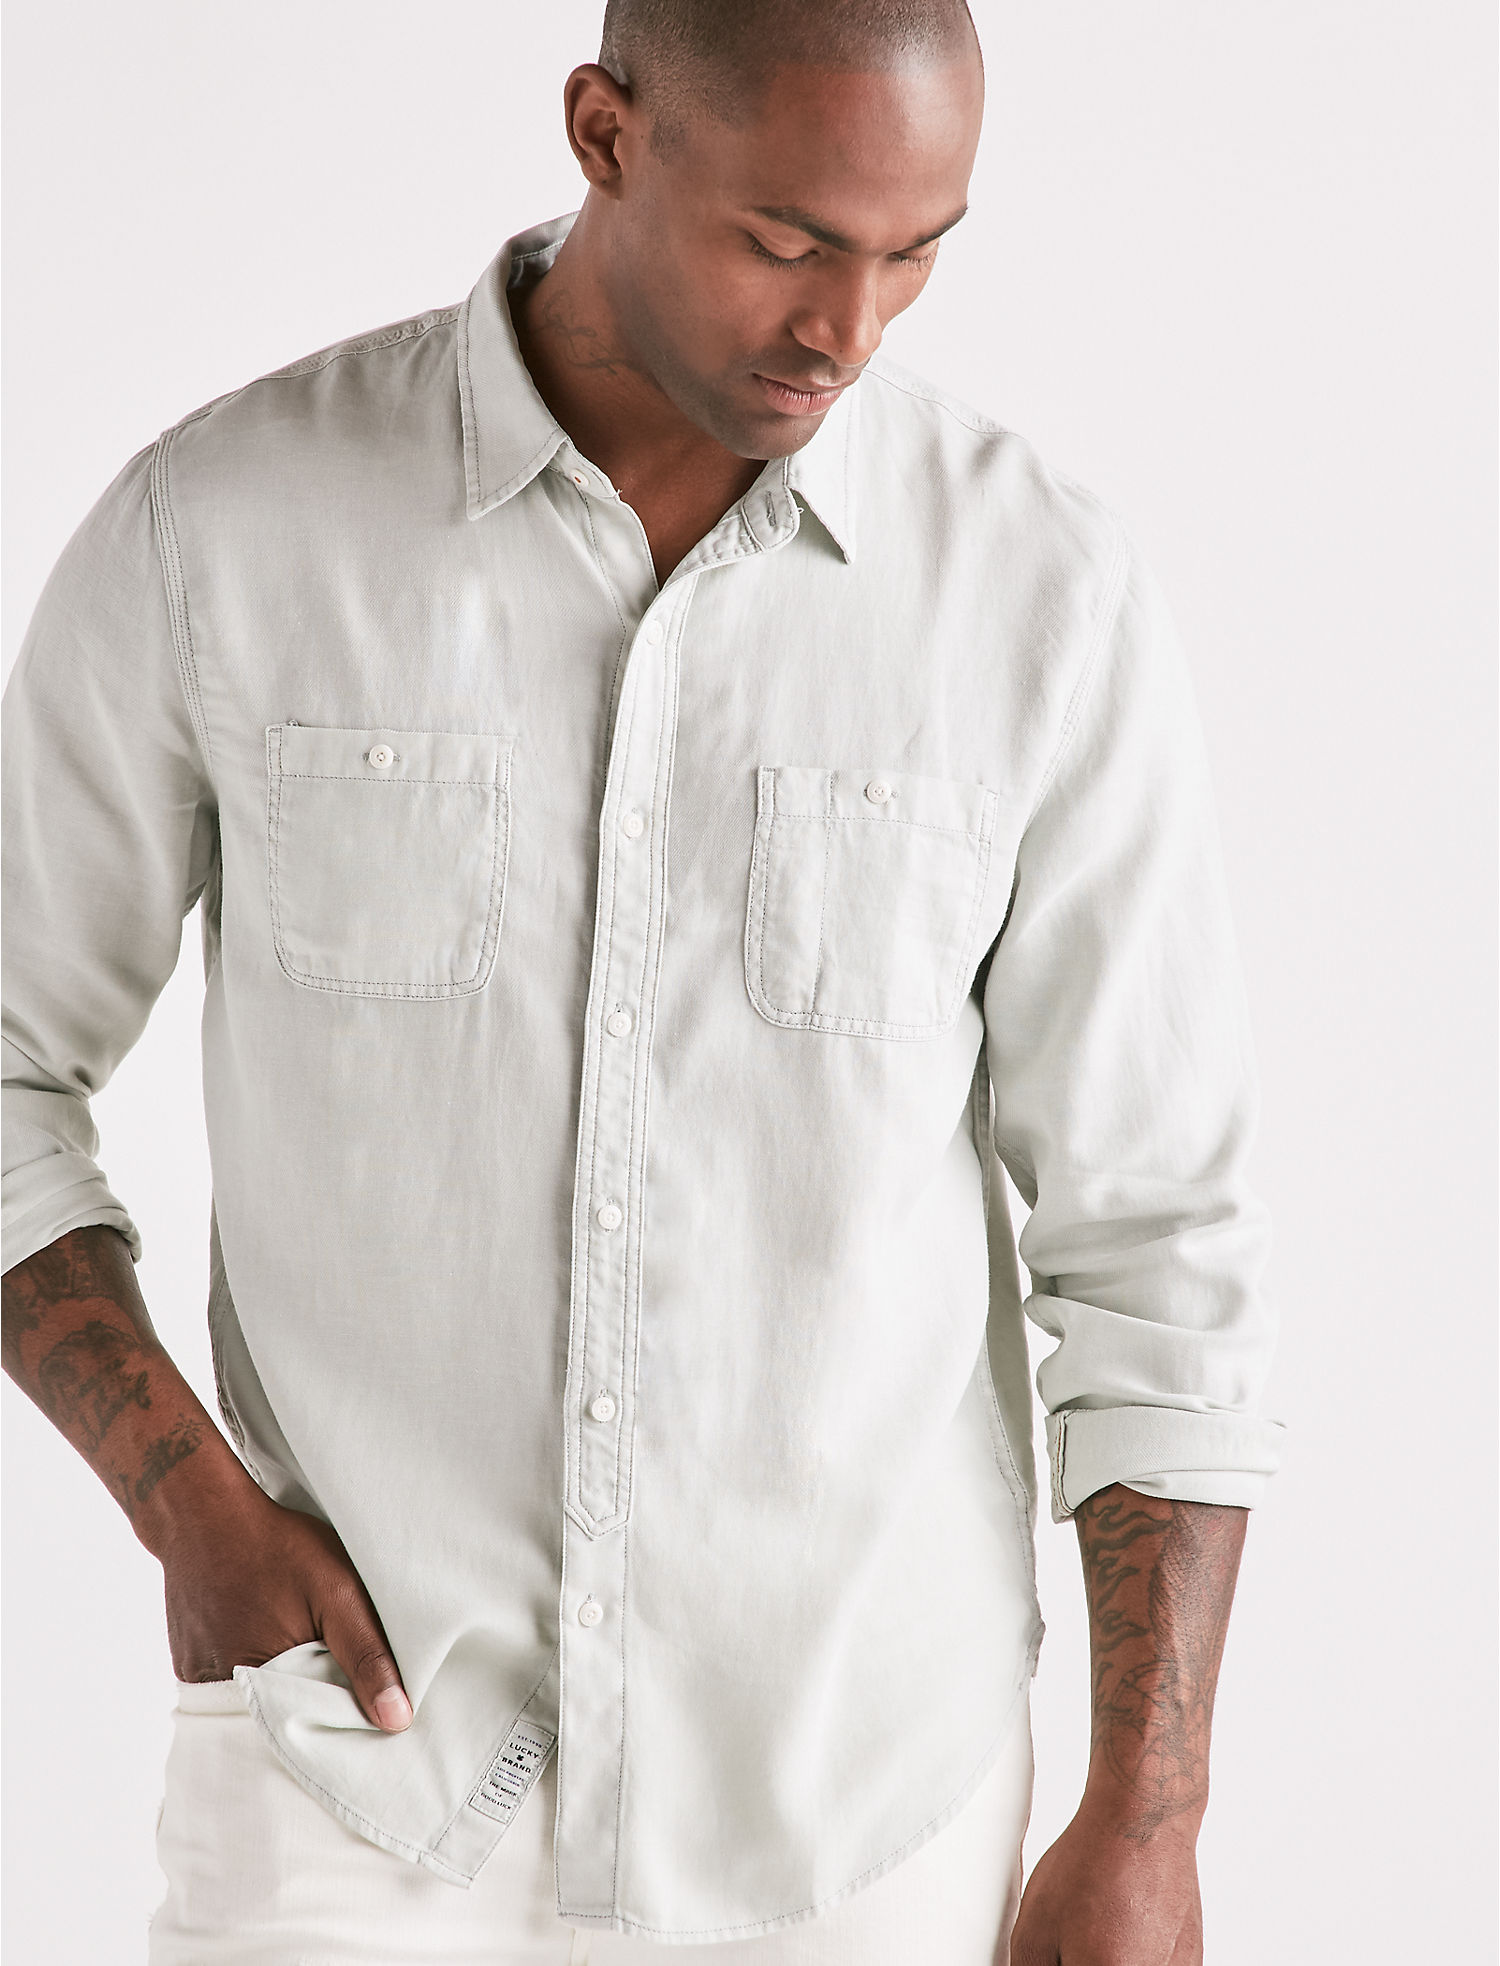 Mason Workwear Shirt | Tuggl